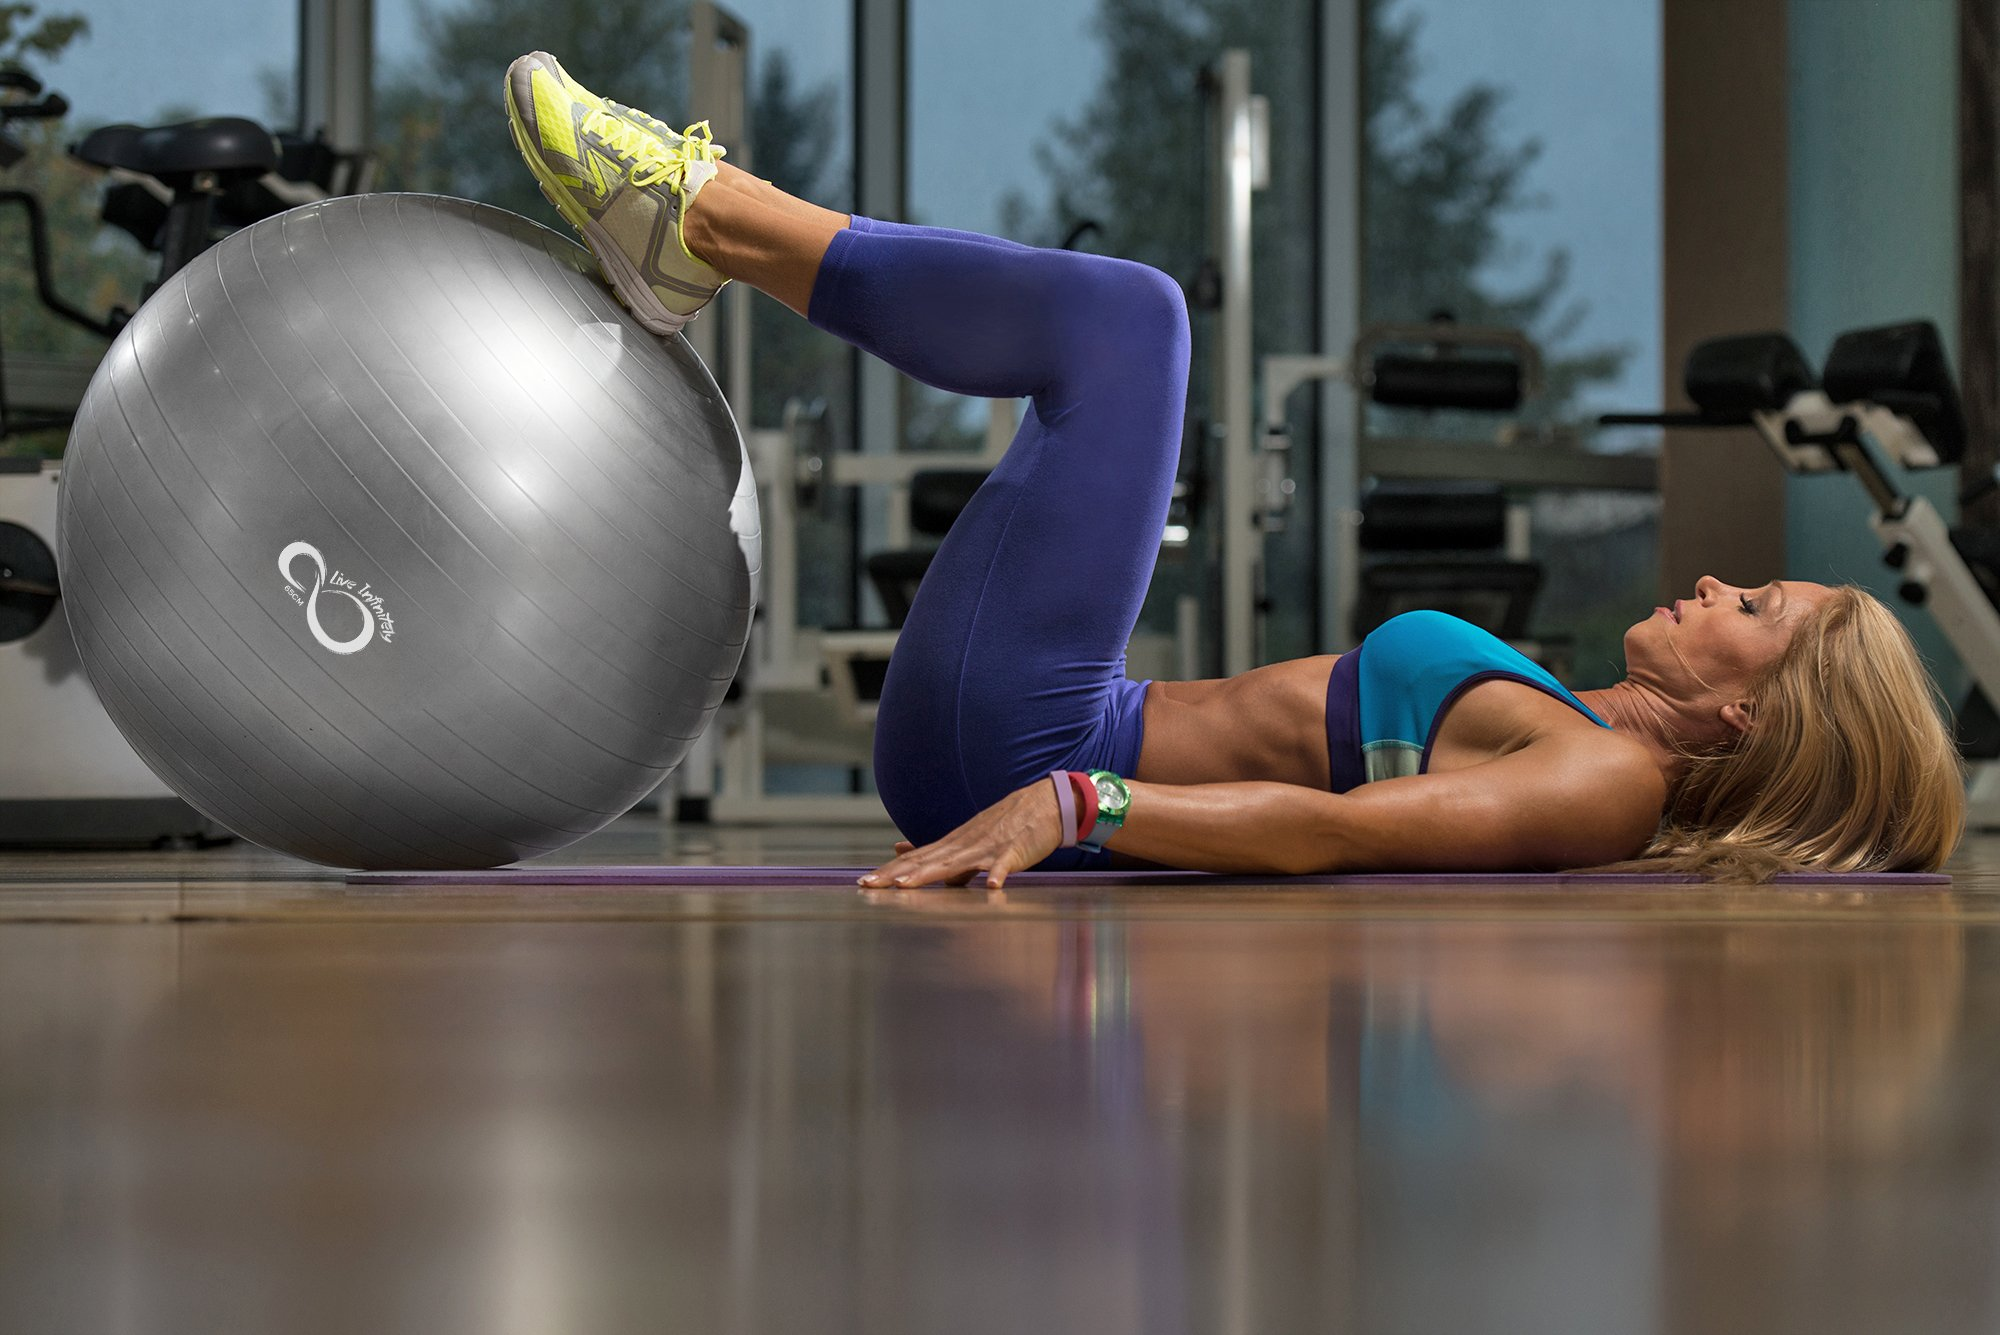 Live Infinitely Exercise Ball (55cm-95cm) Extra Thick Professional Grade Balance & Stability Ball- Anti Burst Tested Supports 2200lbs- Includes Hand Pump & Workout Guide Access Silver 55cm by Live Infinitely (Image #6)